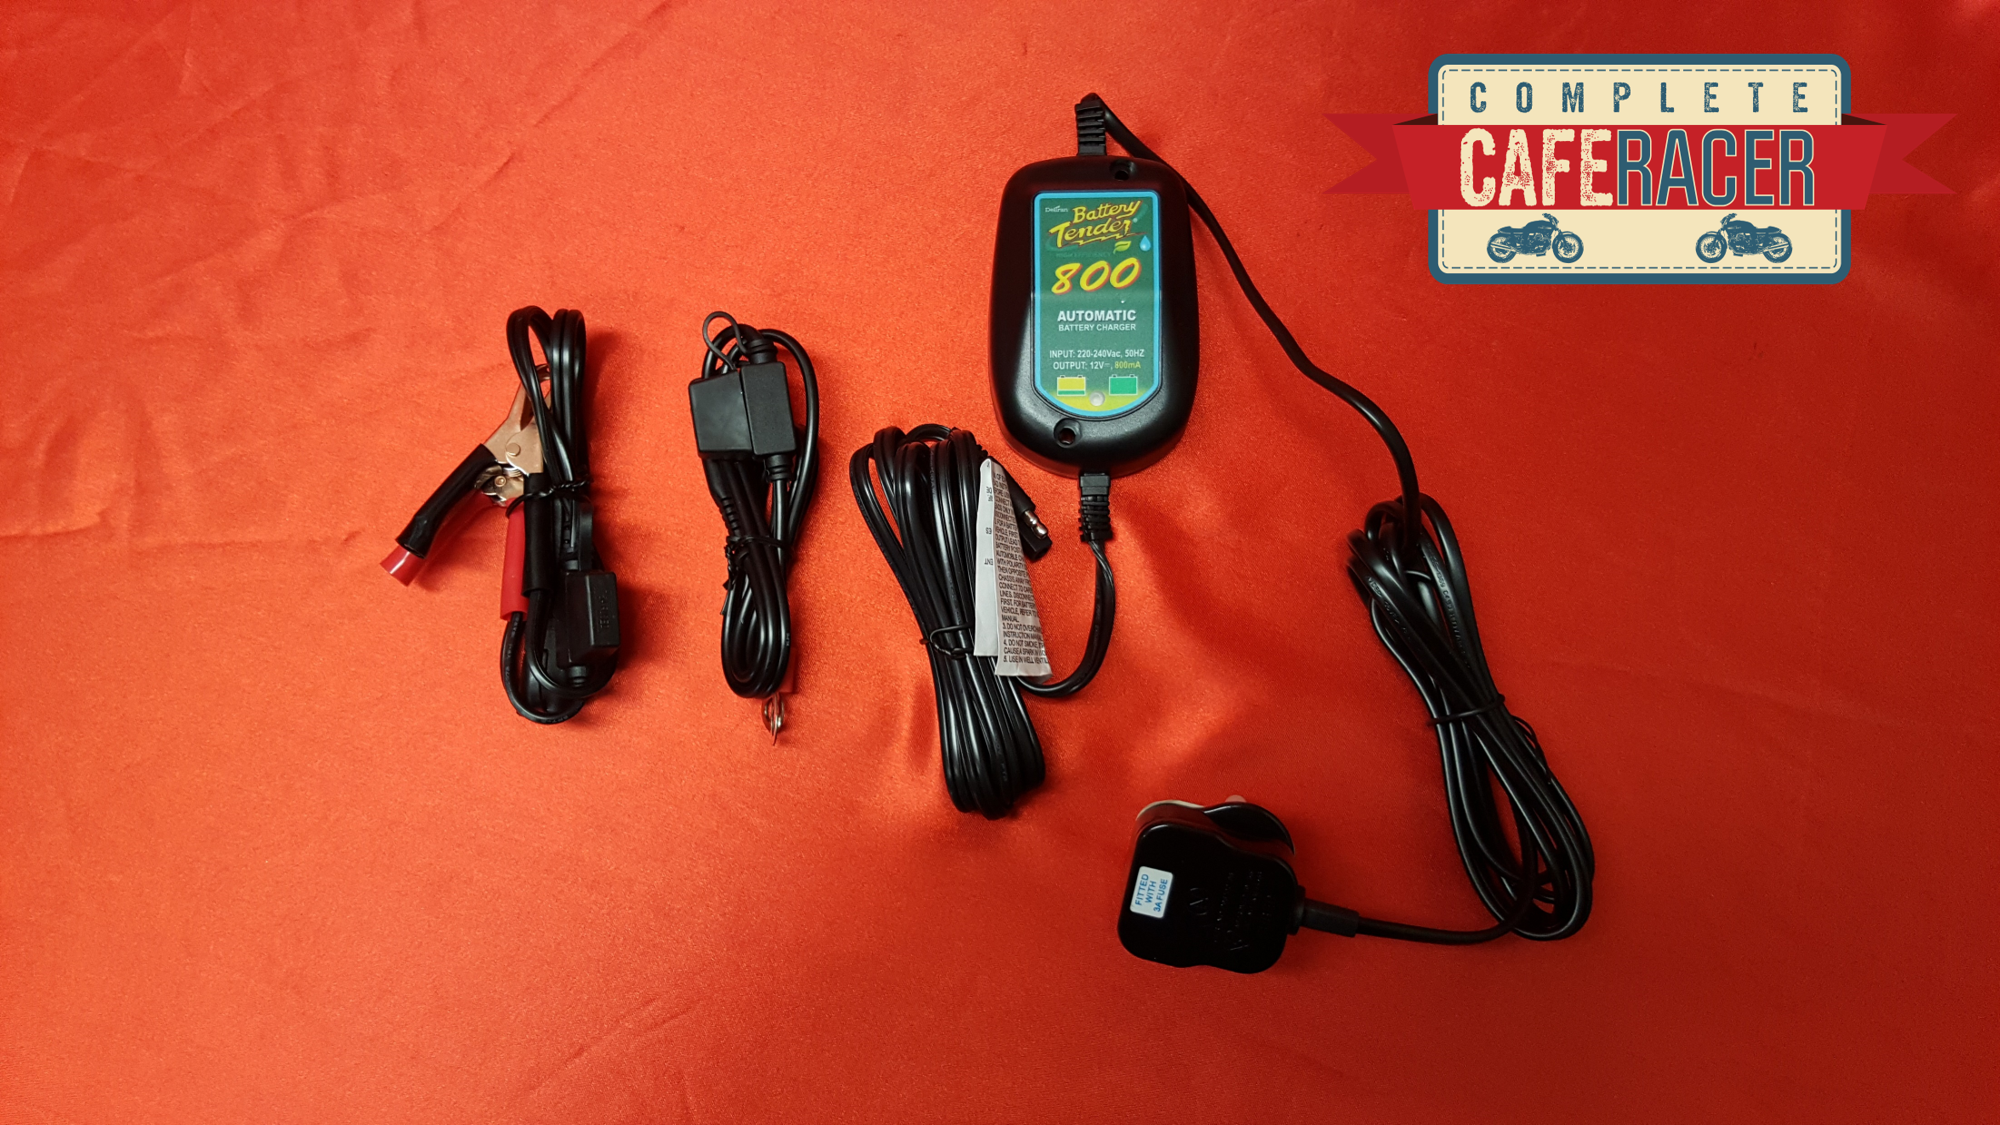 WATERPROOF 800mA BATTERY CHARGER